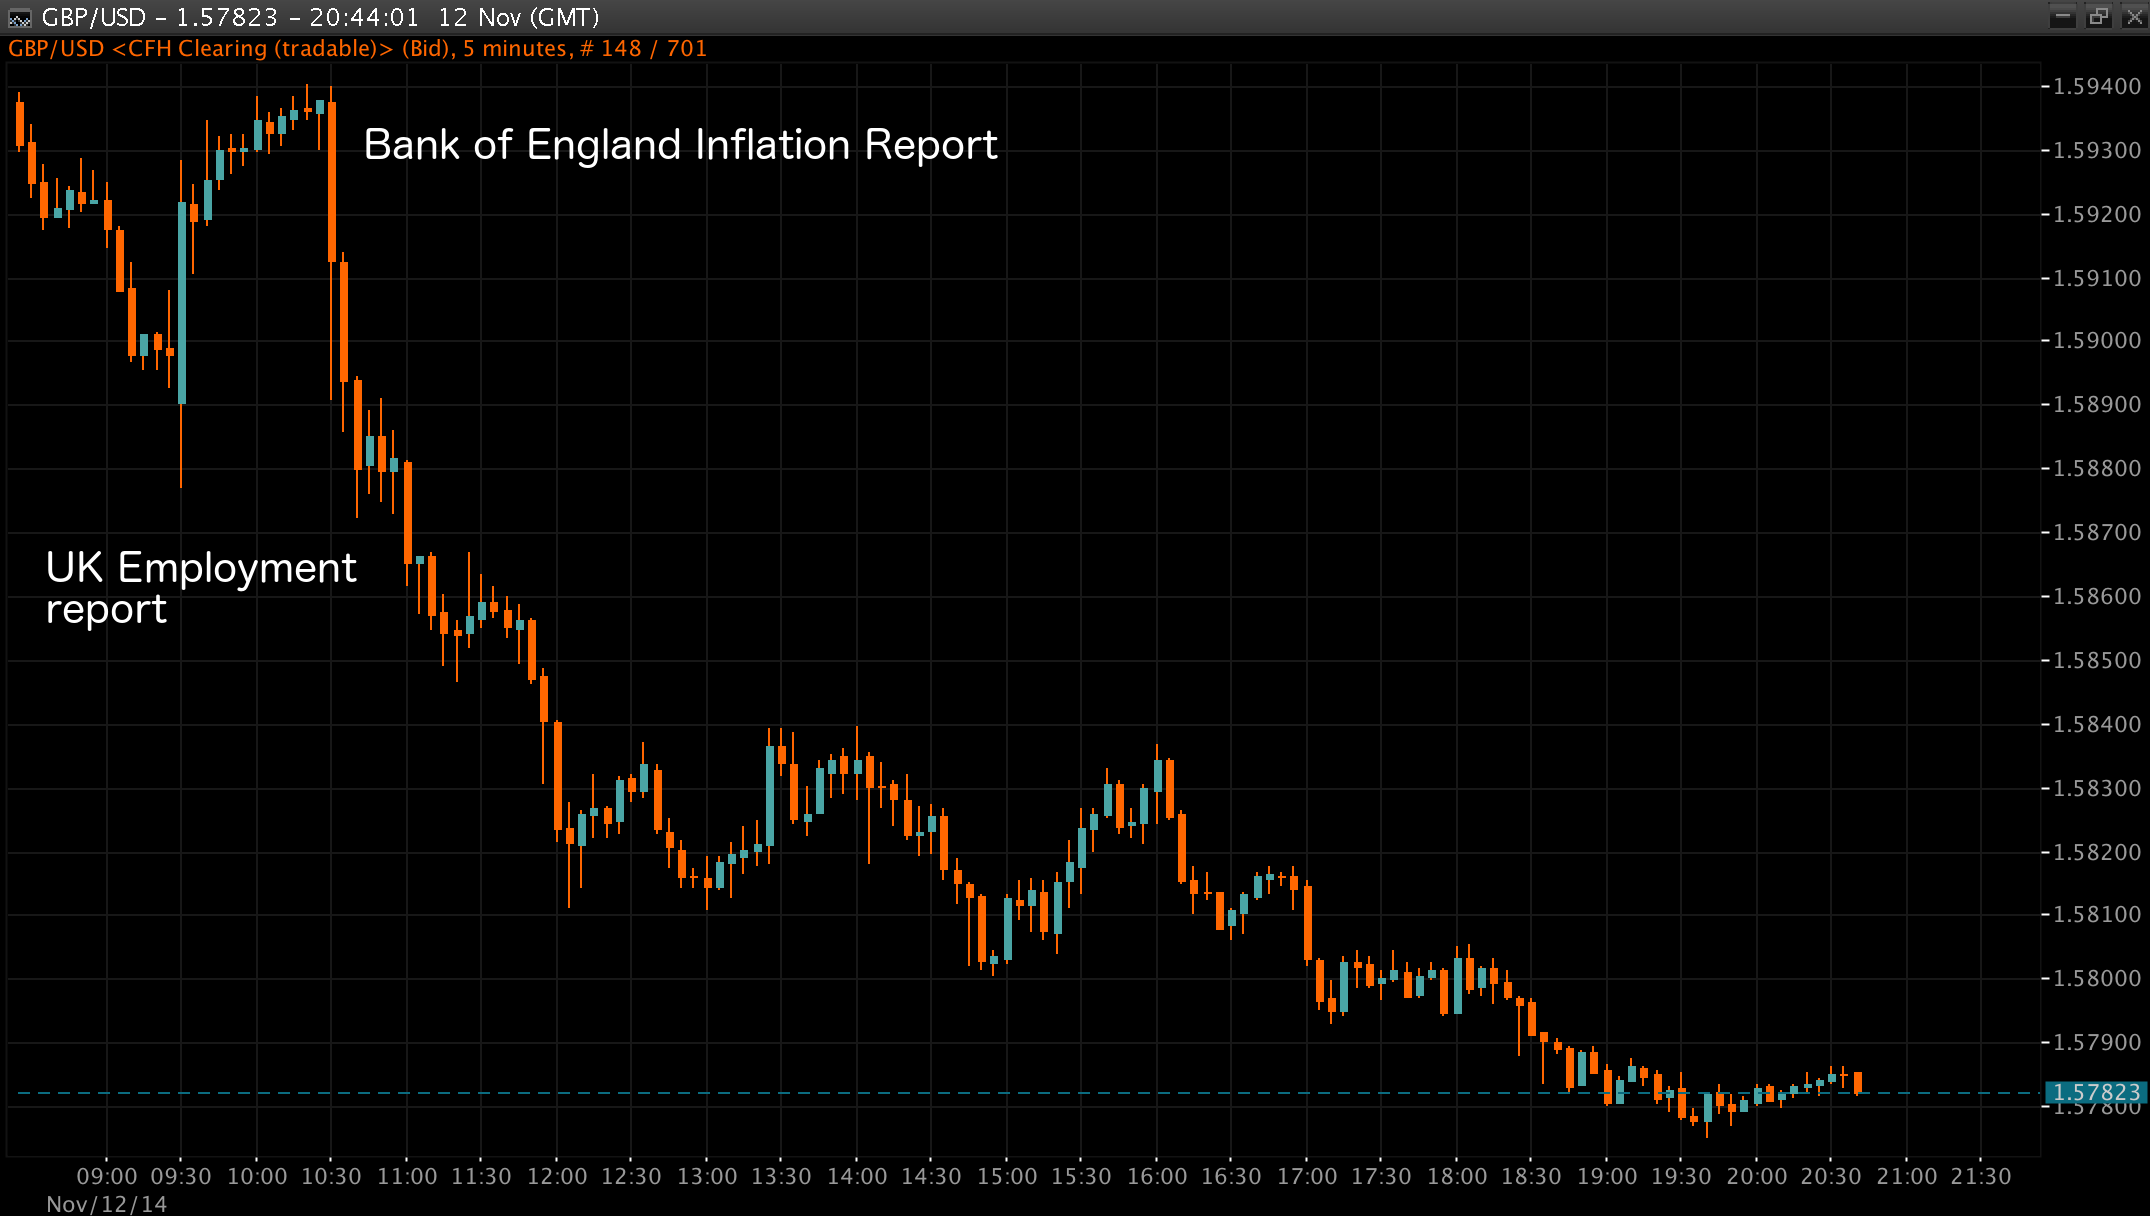 British_pound_boe_inflation_report